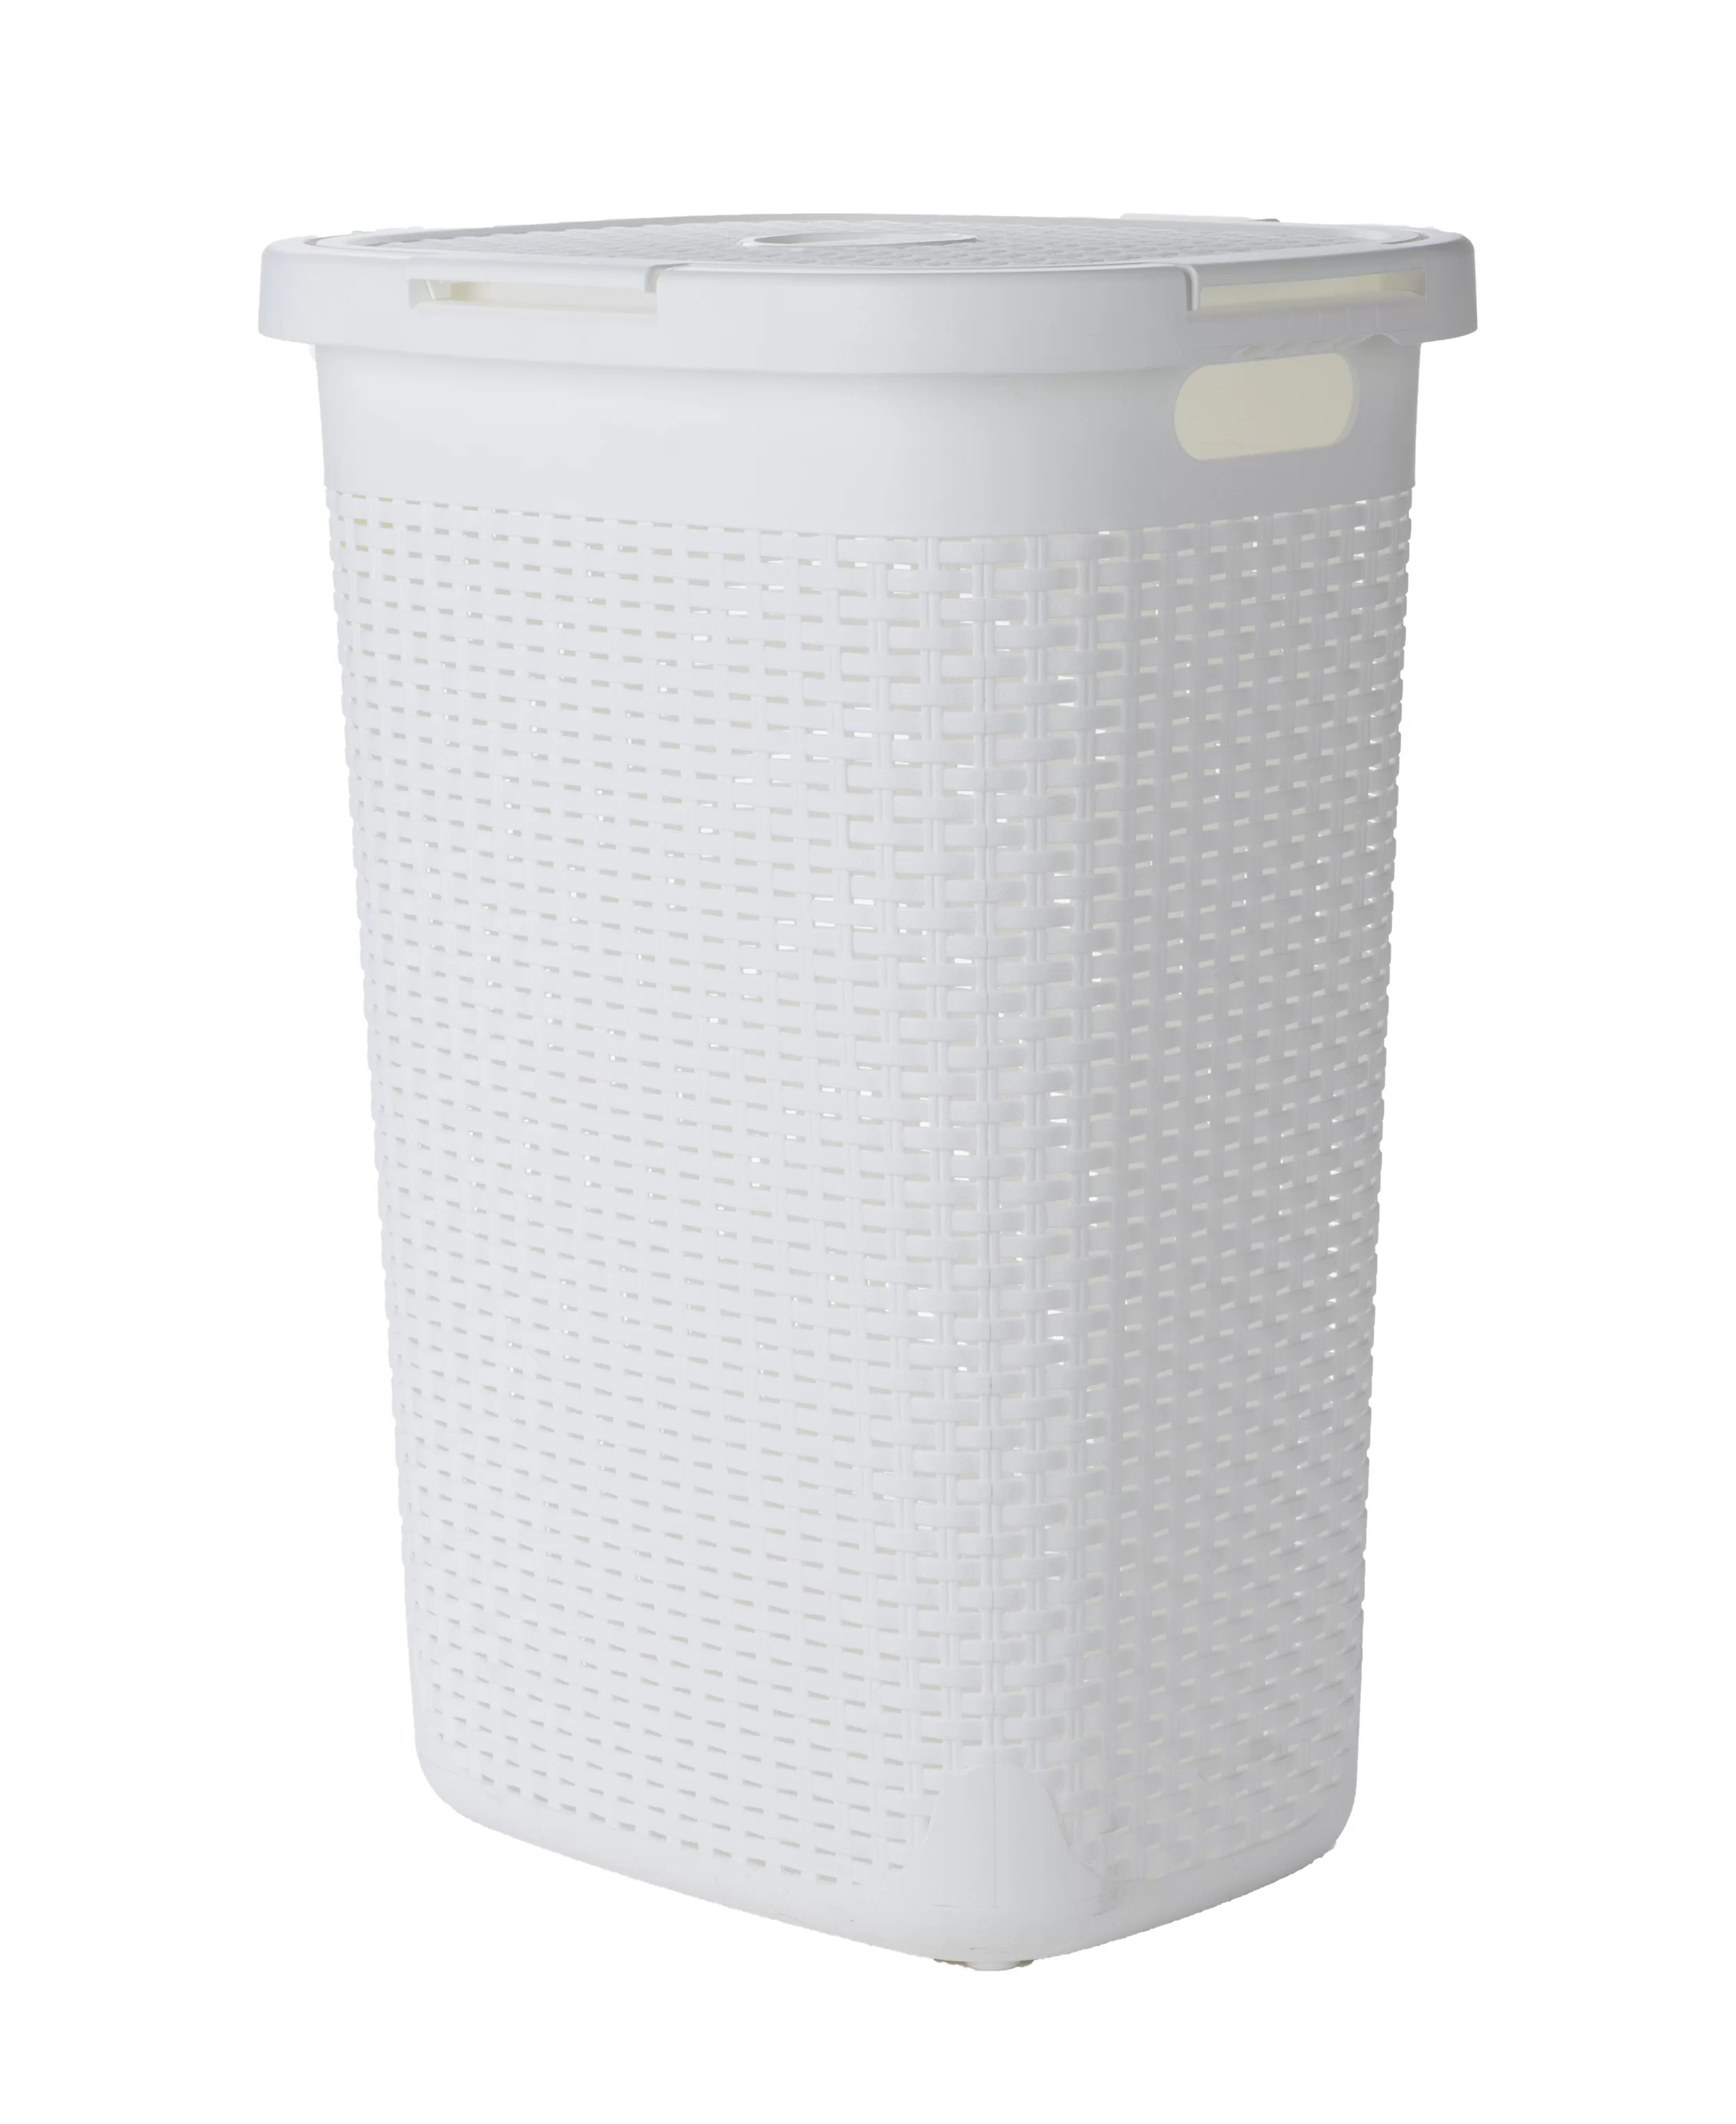 3,000+ Best Laundry Basket Photos · 100% Free Download